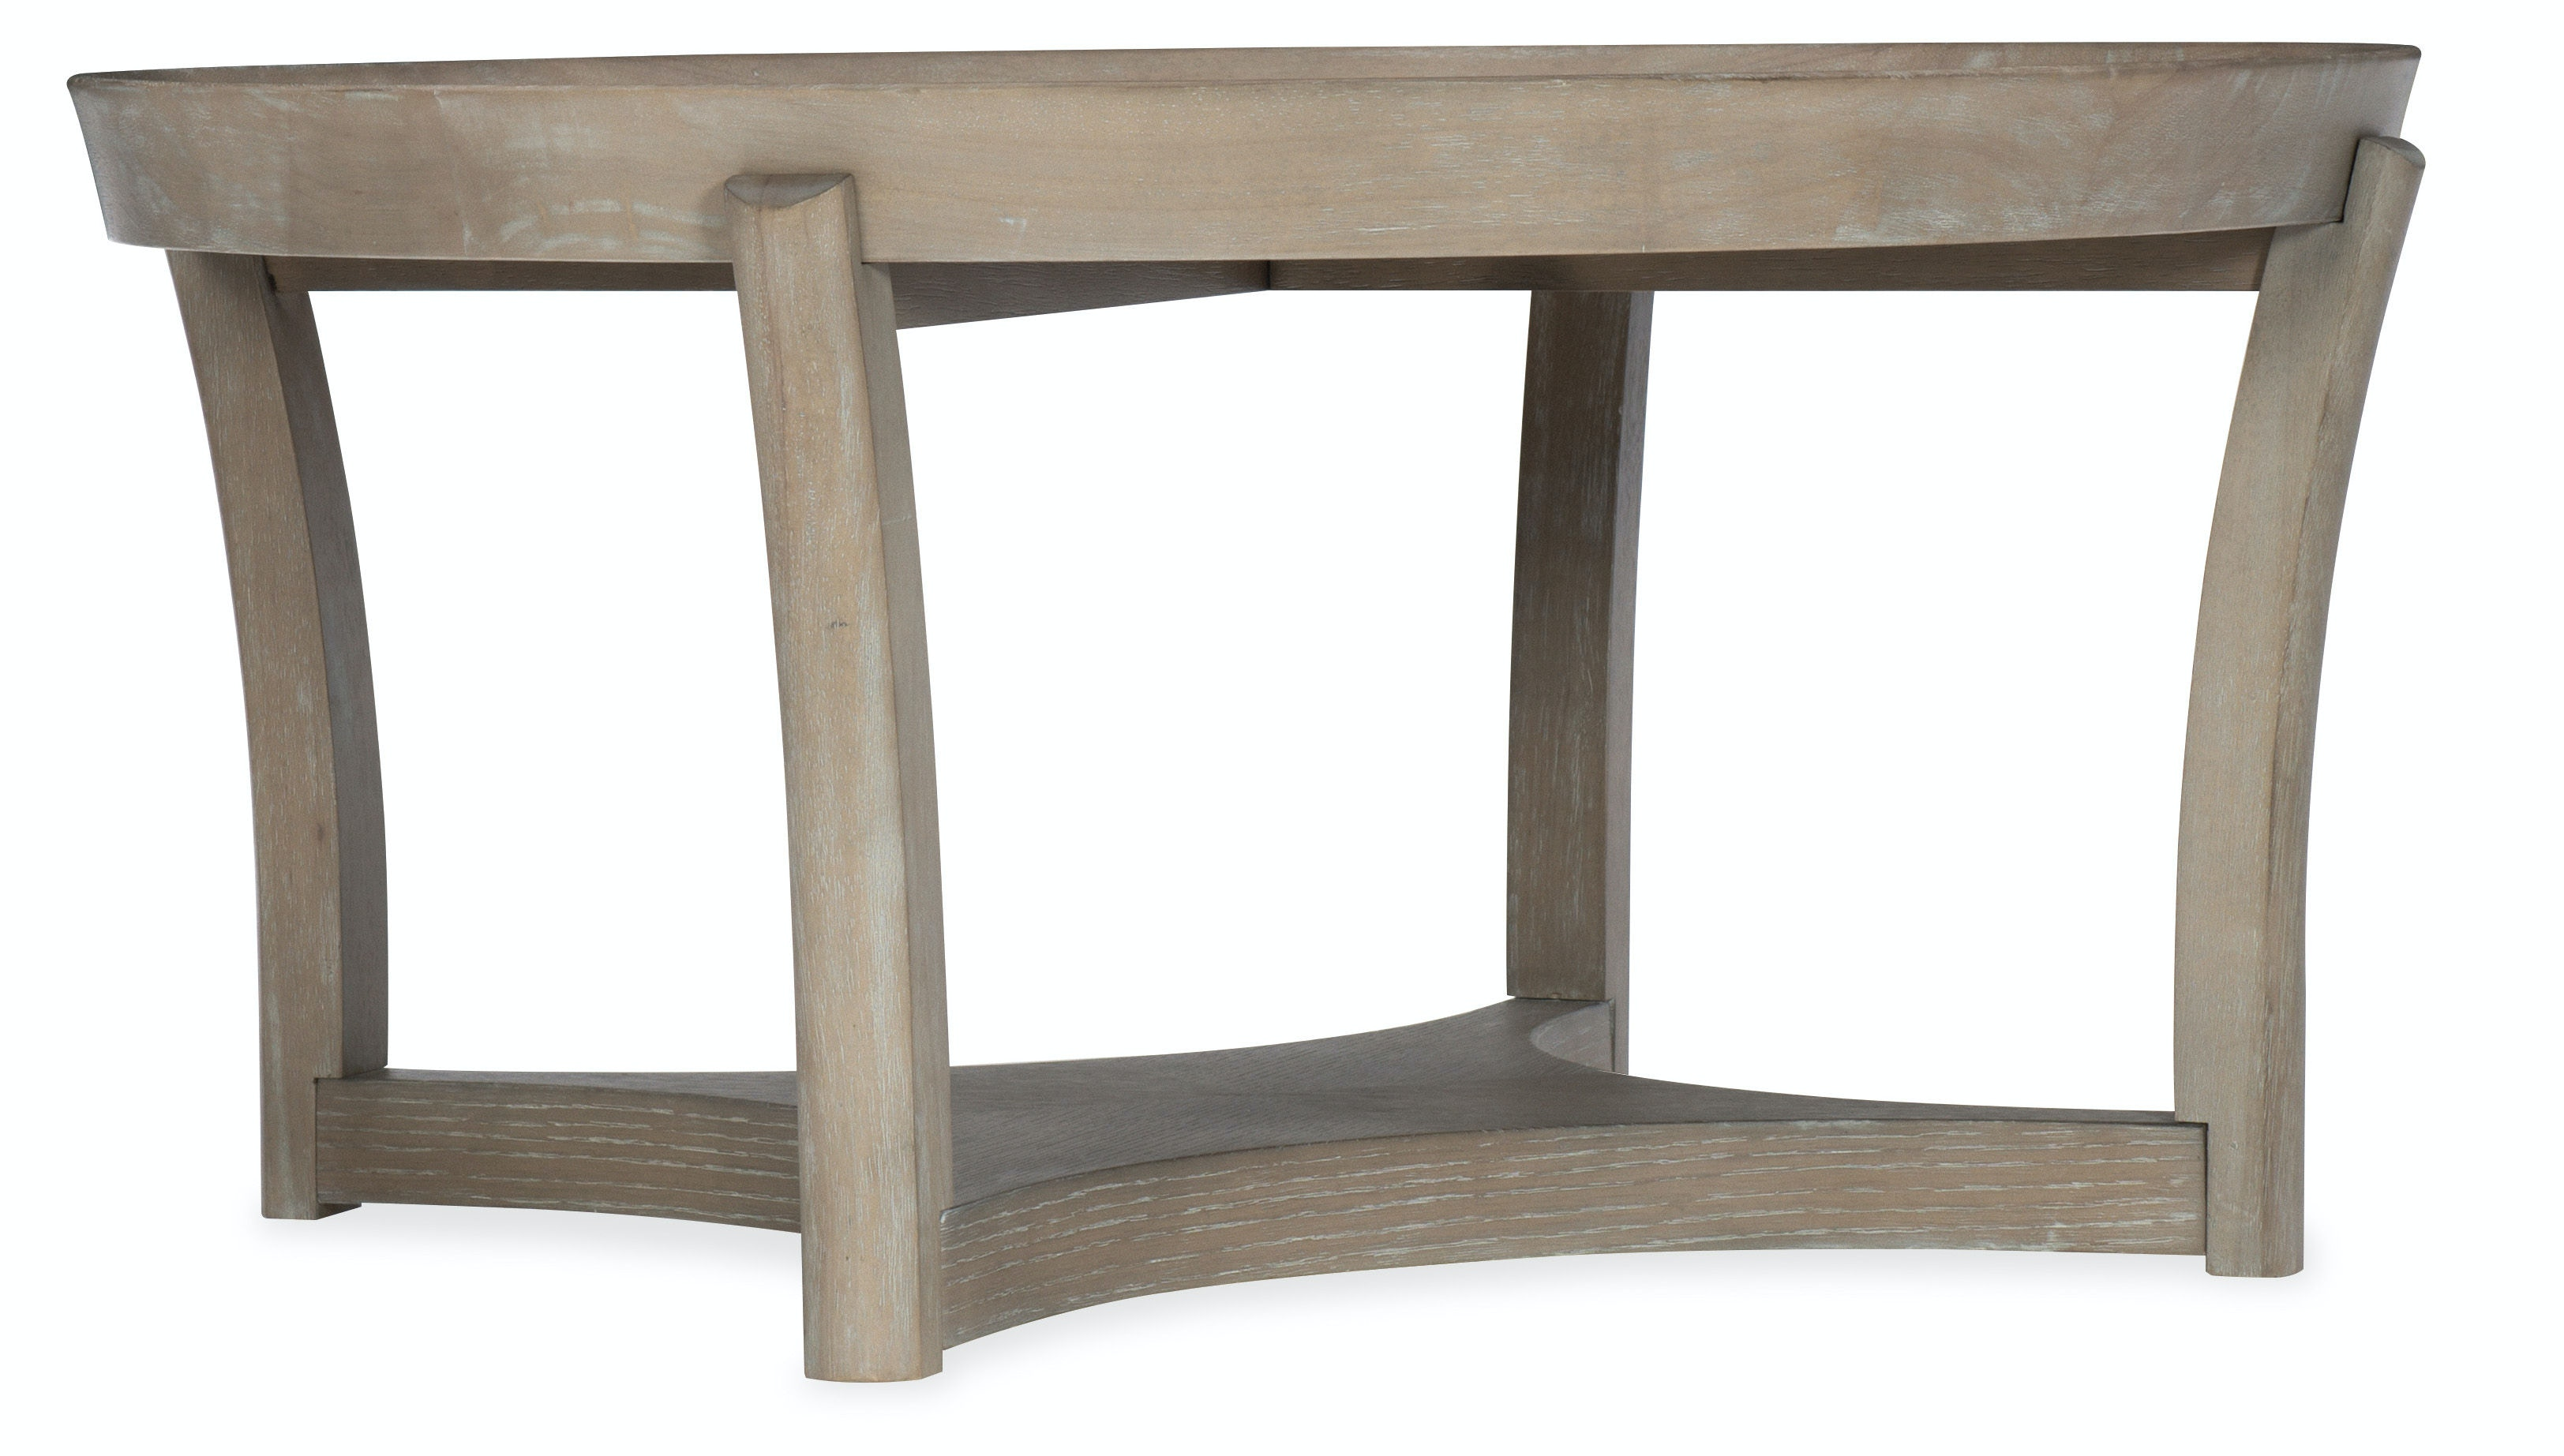 Hooker Furniture Affinity Round Cocktail Table 6050 80111 GRY